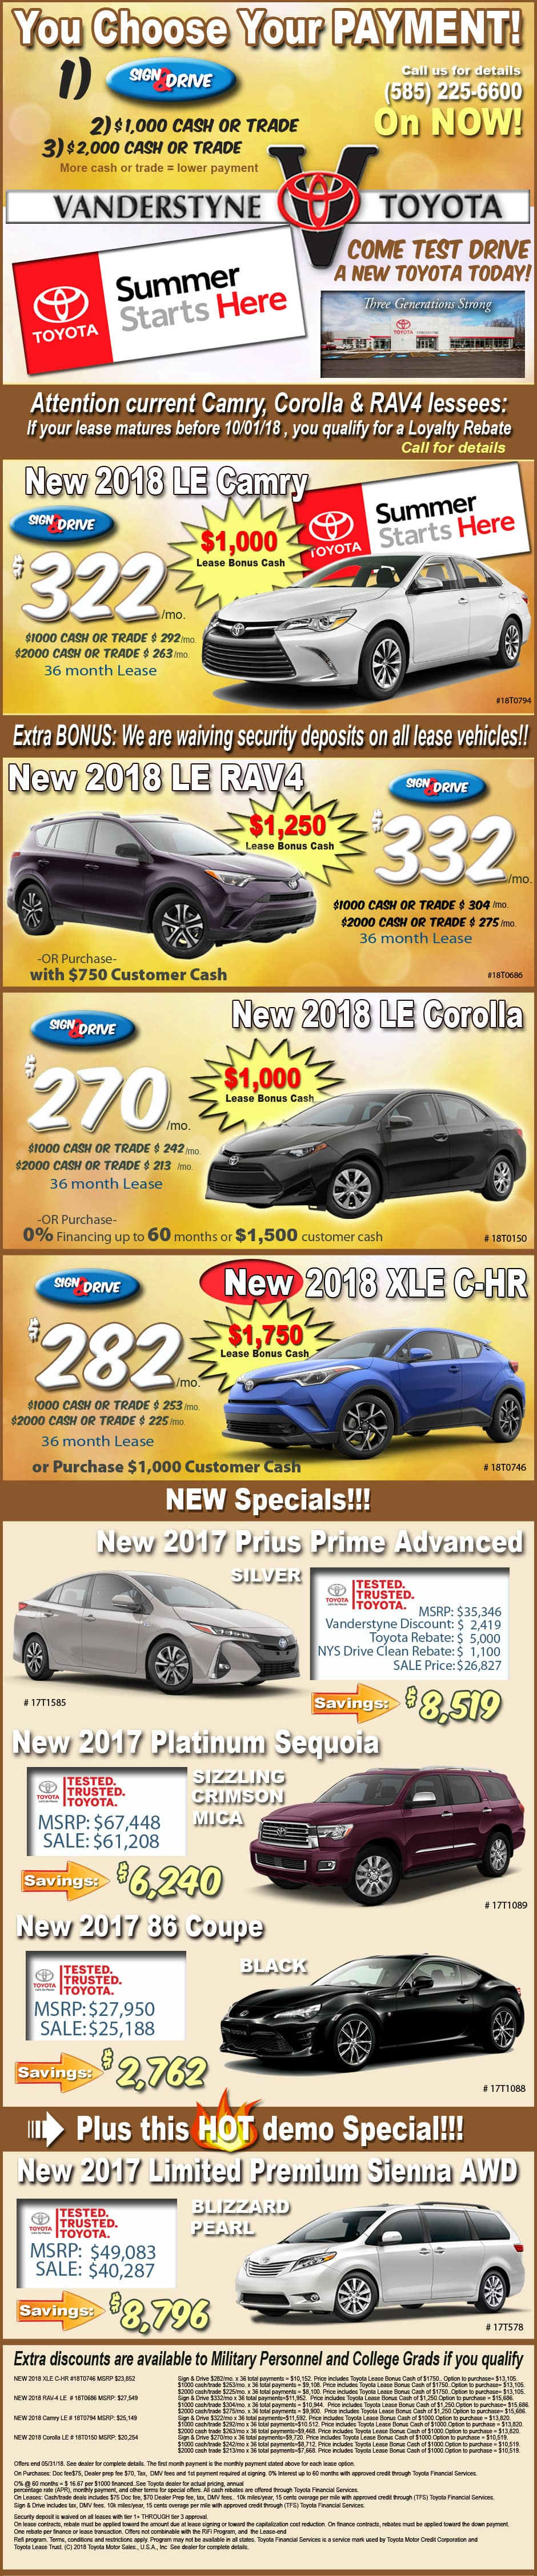 toyota st offers cloud camry specials lease